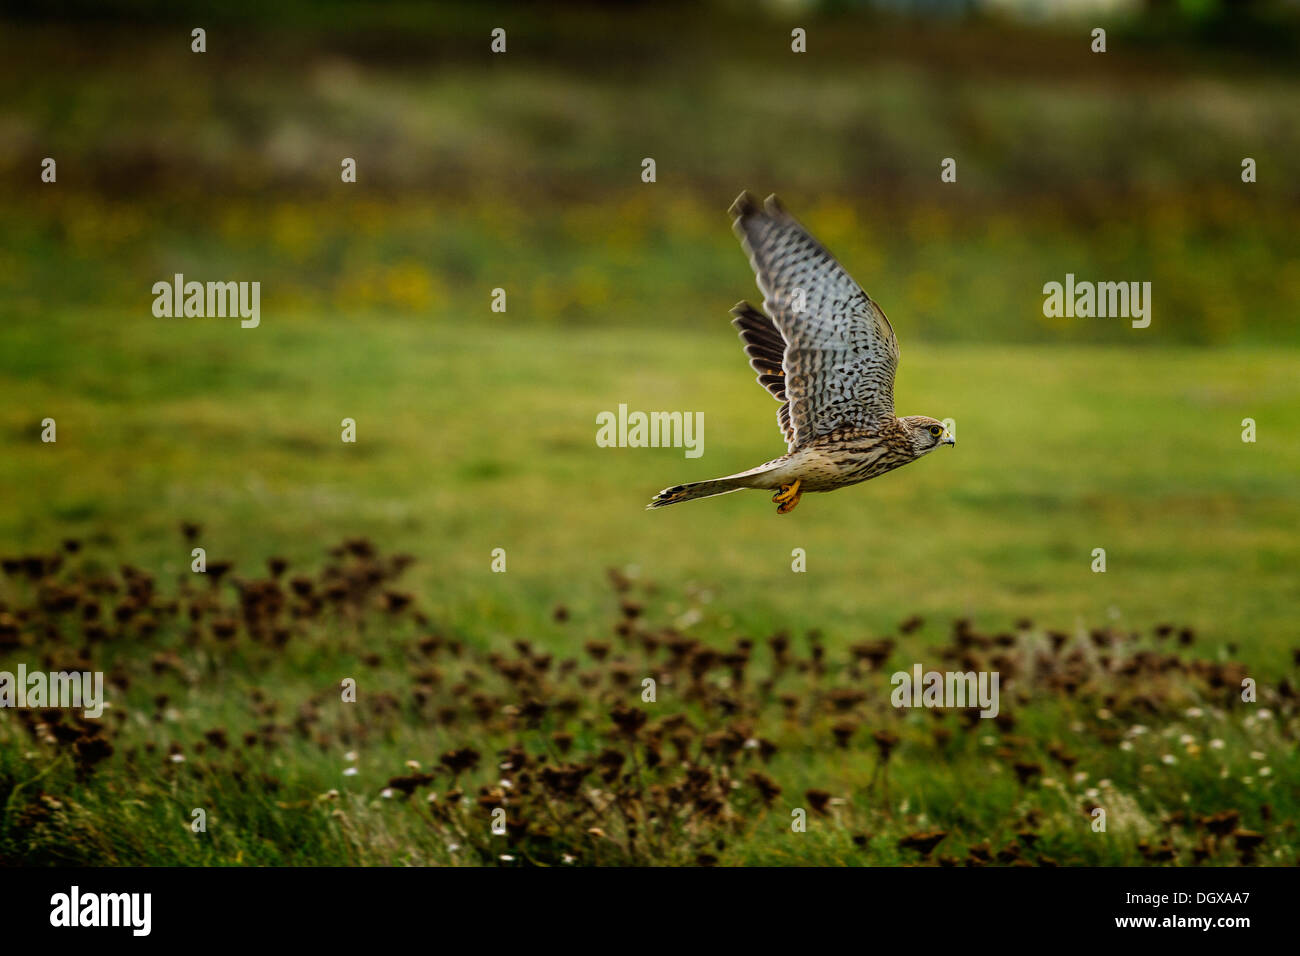 Cornish Kestrel - Stock Image